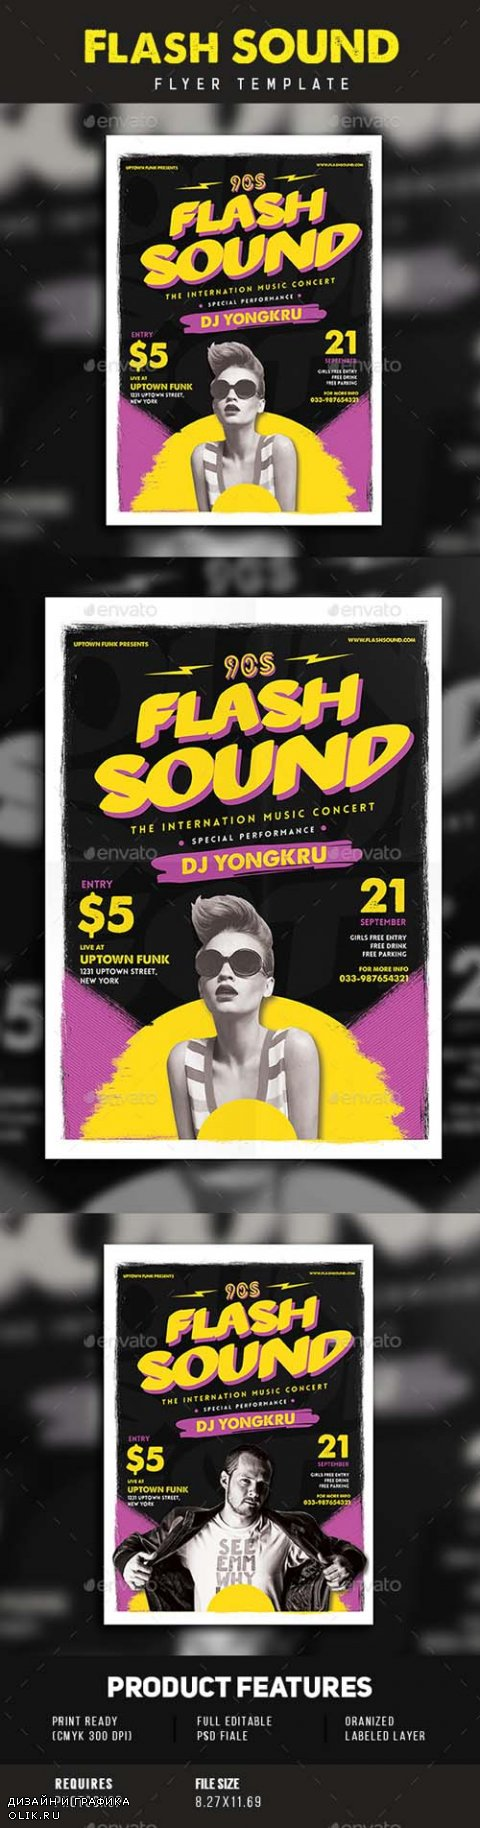 Flash Sound Music Party Flyer 15894719